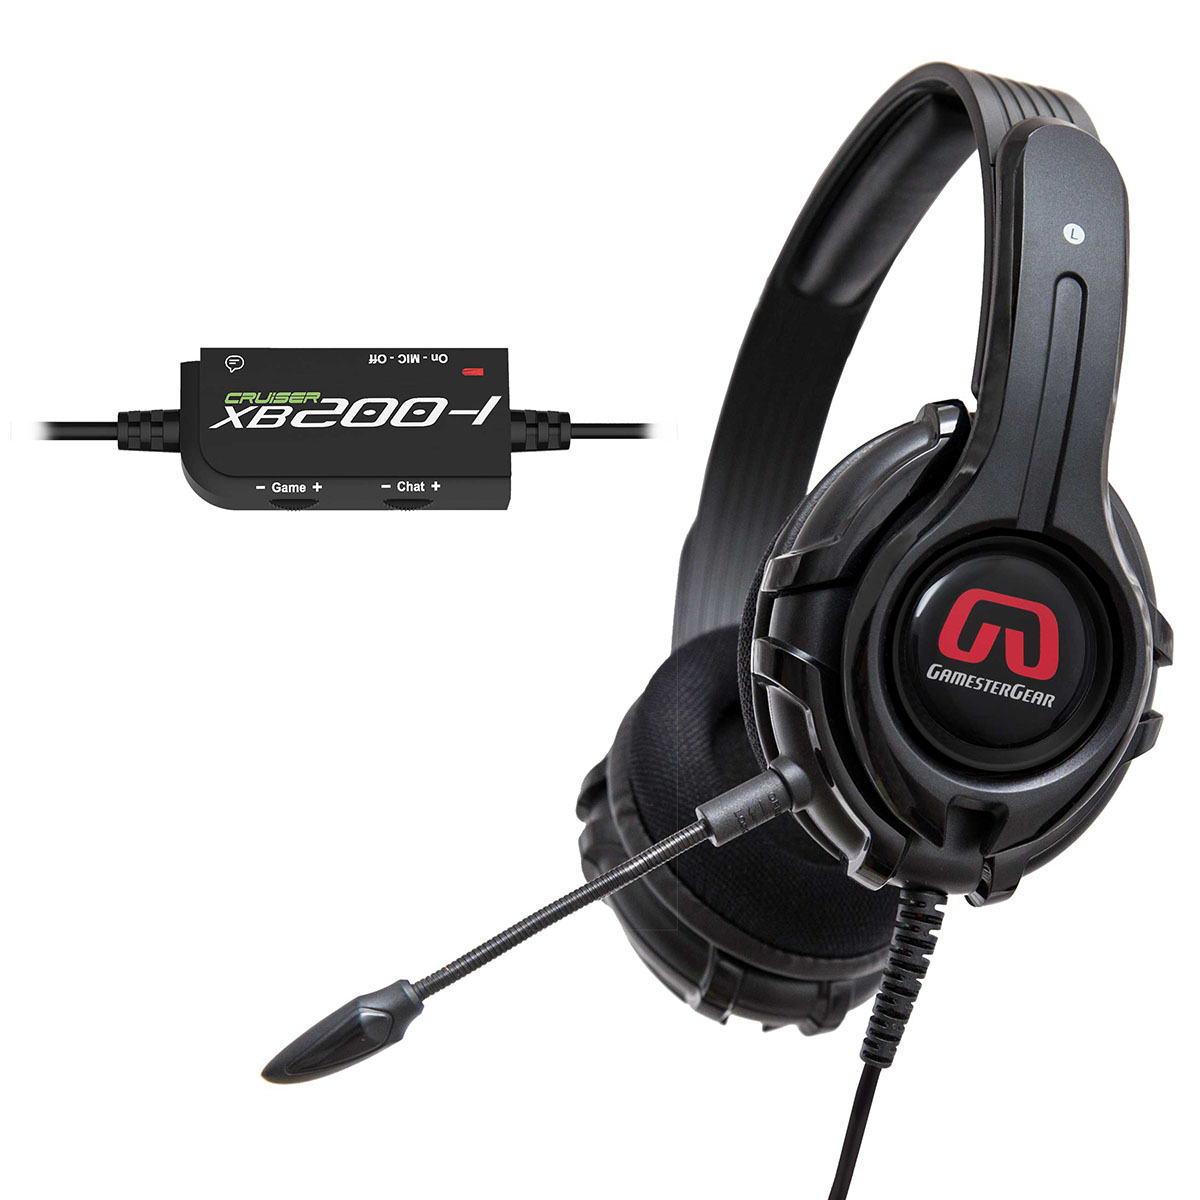 GAMESTERGEAR OG-AUD63082 XB200 HEADSET FOR XBOX 360